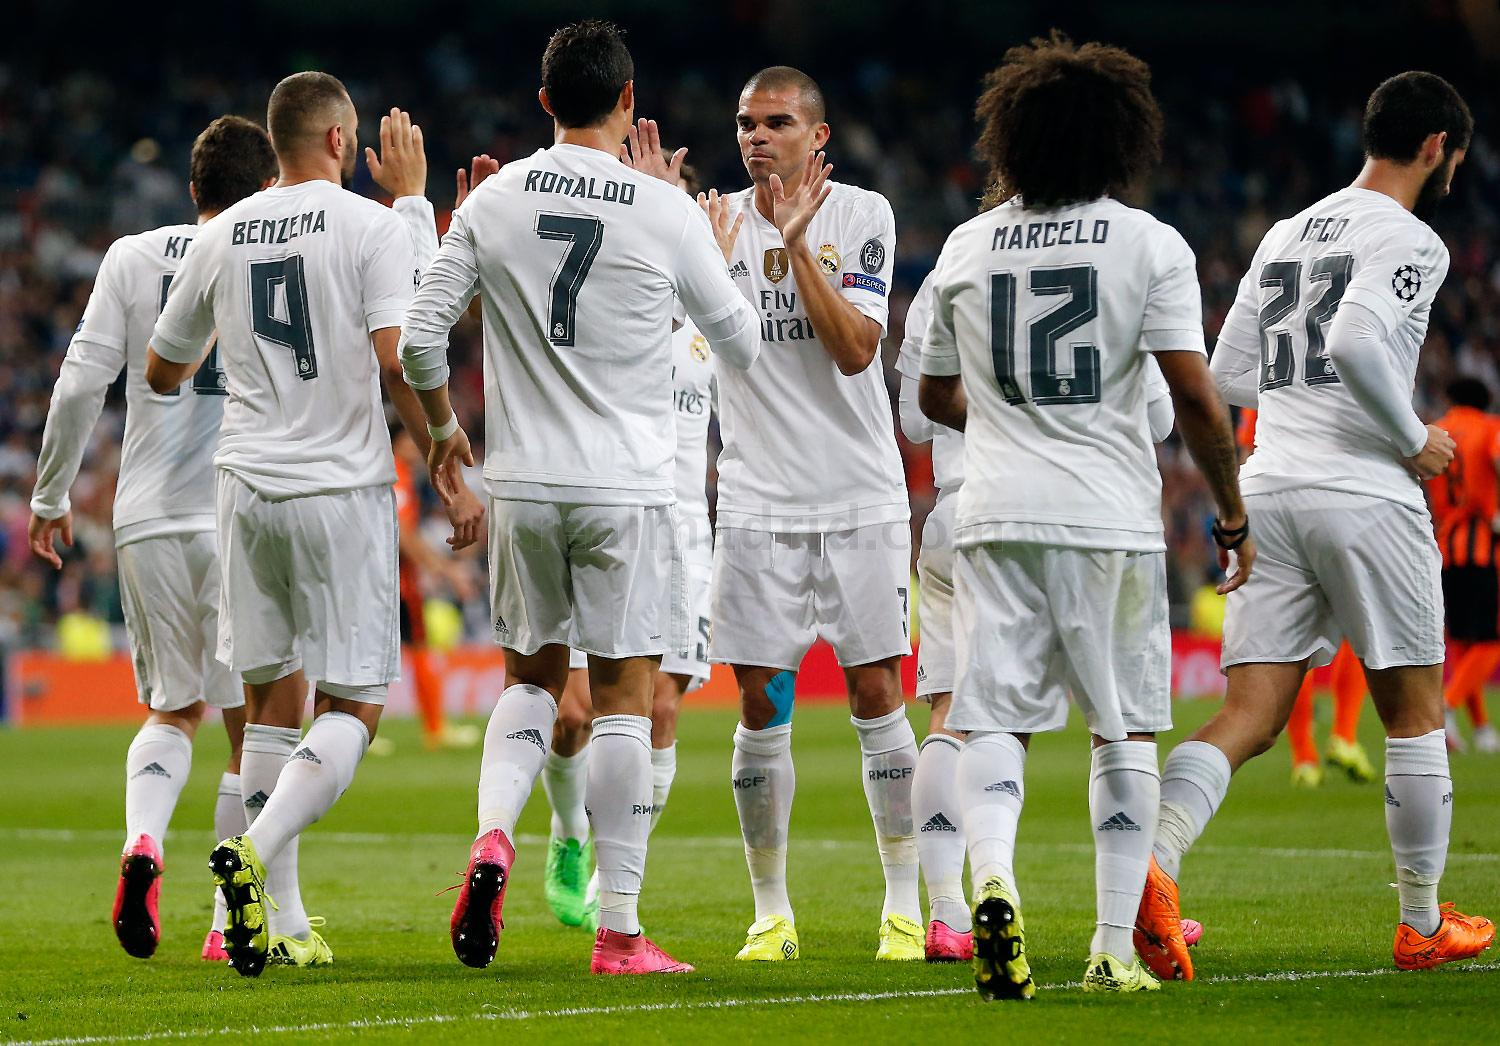 Real Madrid - Real Madrid - Shakhtar Donetsk - 15-09-2015